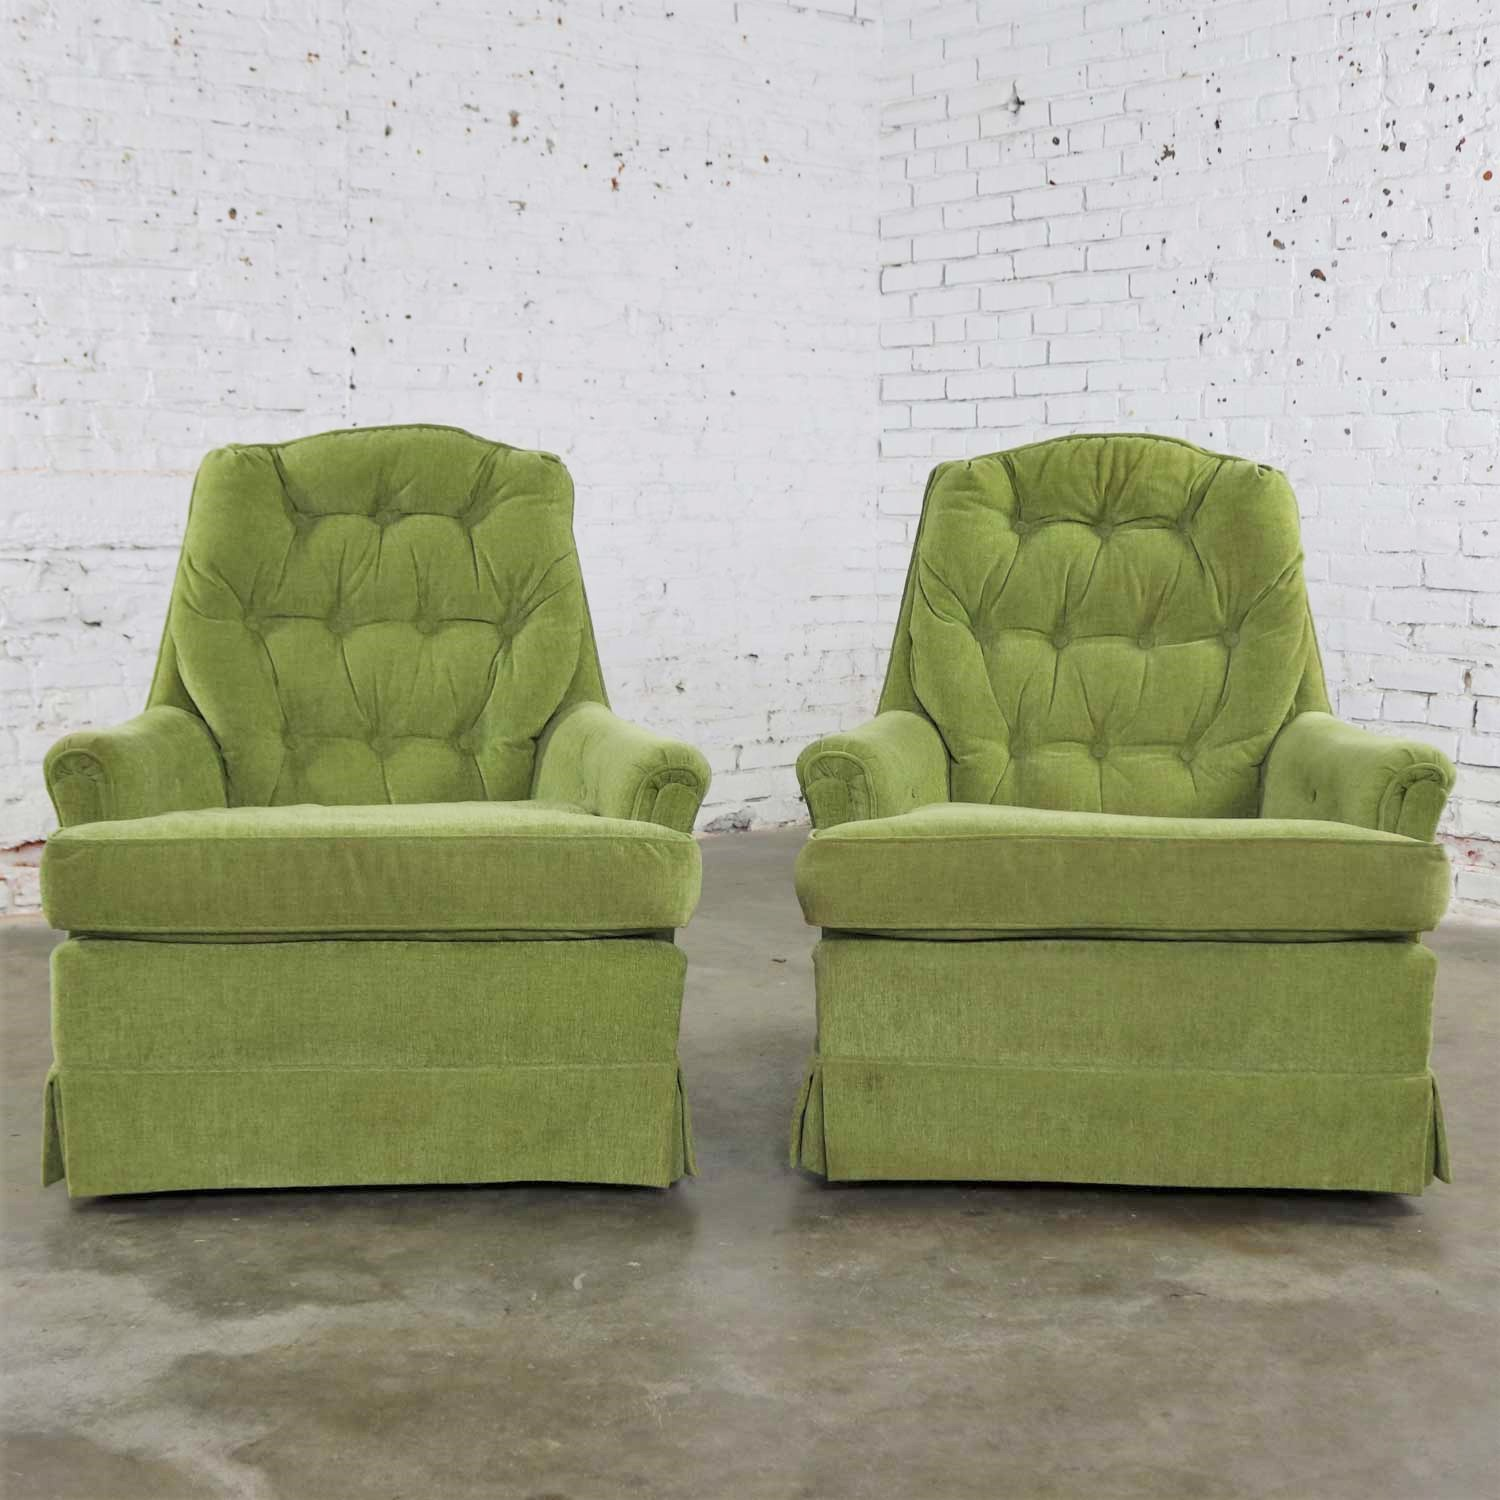 Chartreuse Green Velvet Swivel Rocking Lounge Chairs With